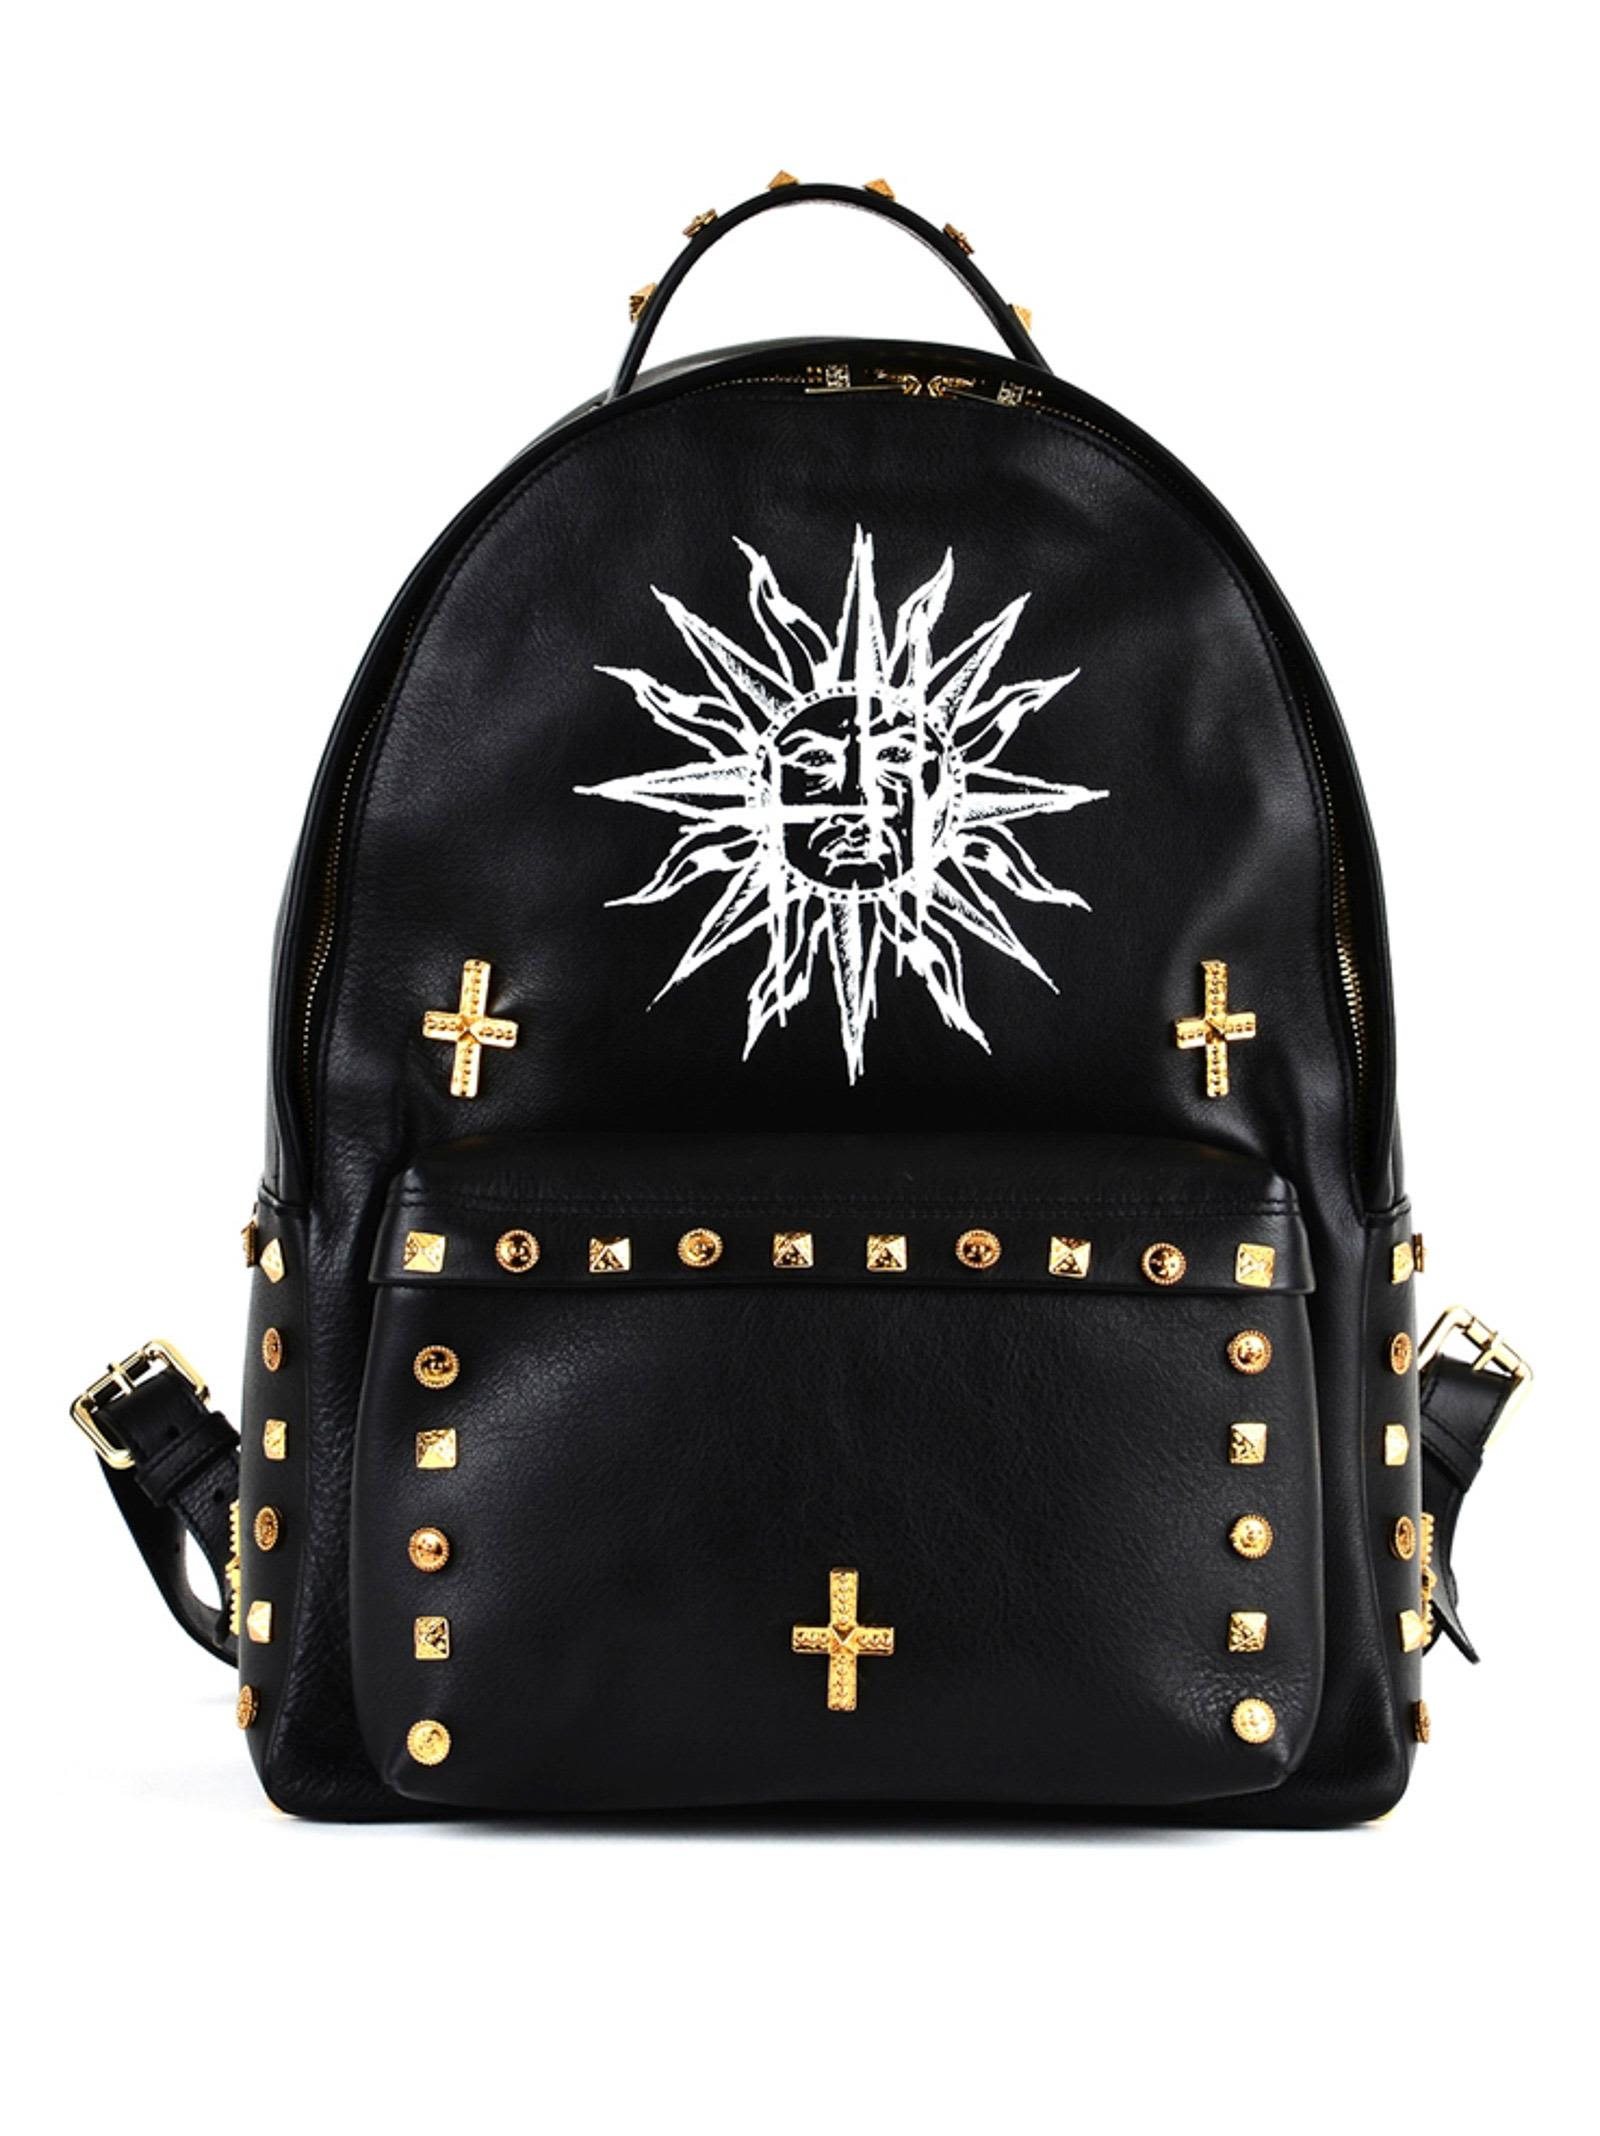 Fausto Puglisi BLACK BACKPACK IN LEATHER WITH STUDS